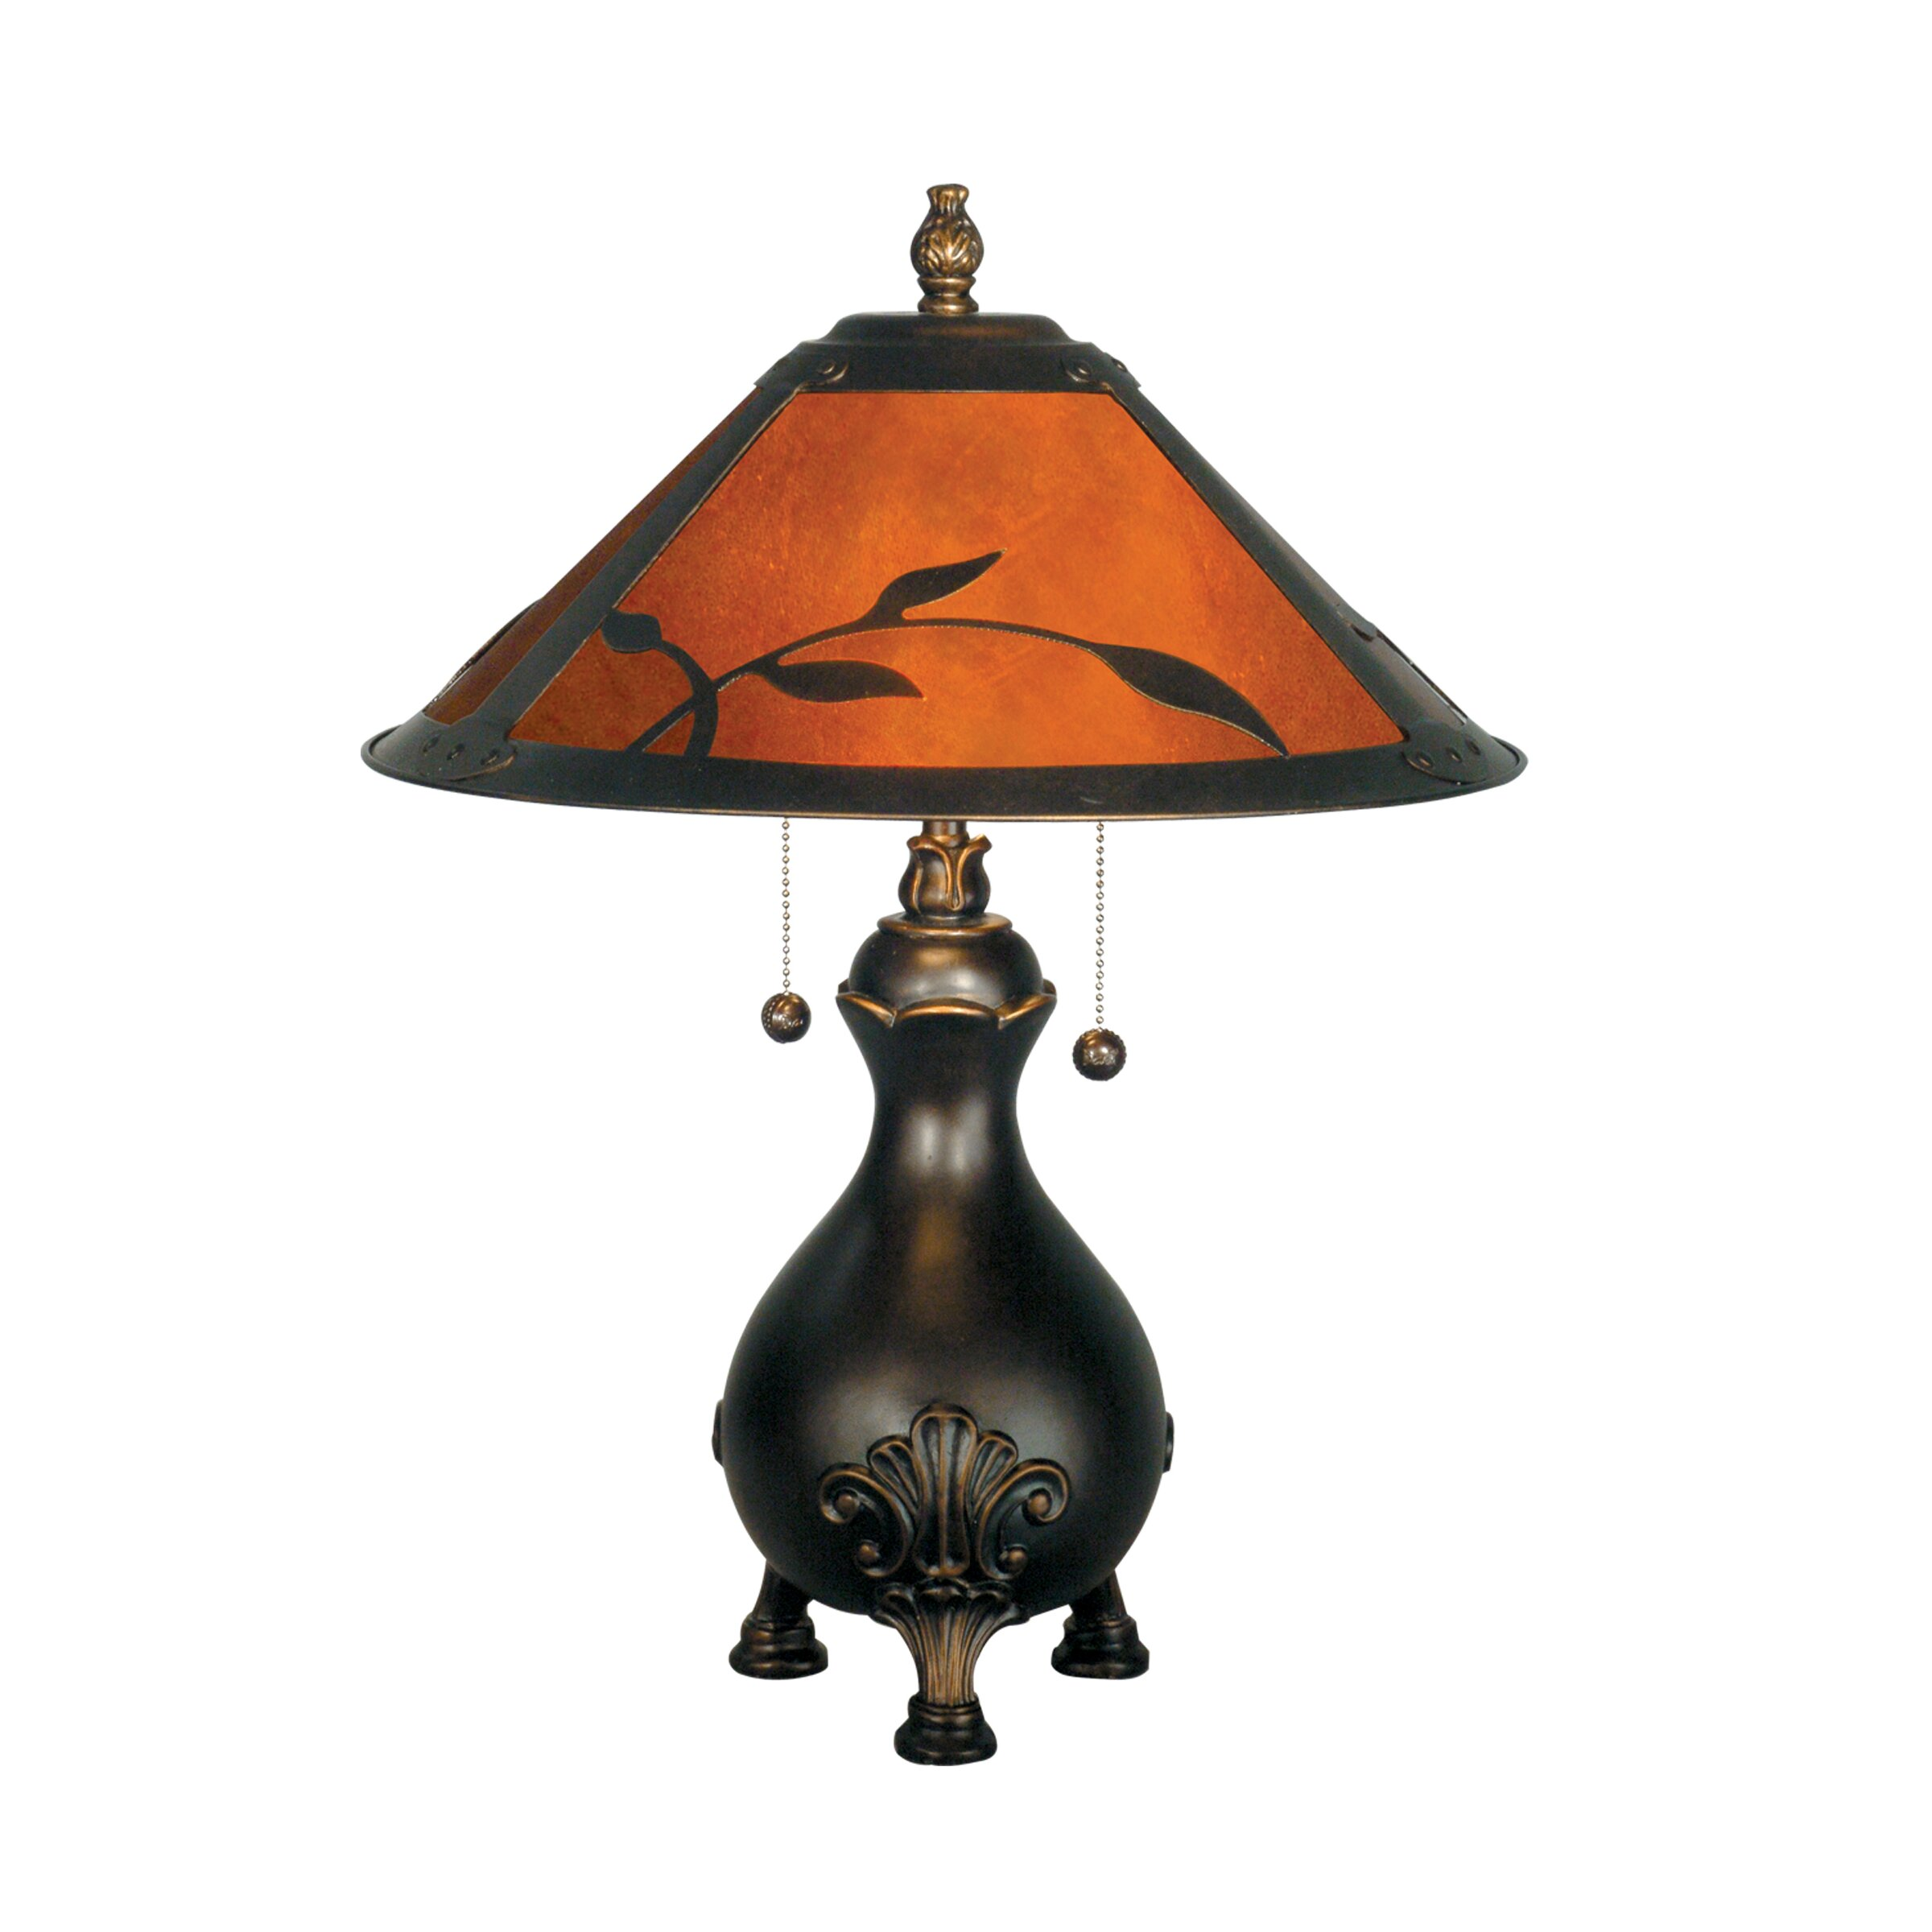 lighting lamps table lamps dale tiffany sku dt3430. Black Bedroom Furniture Sets. Home Design Ideas